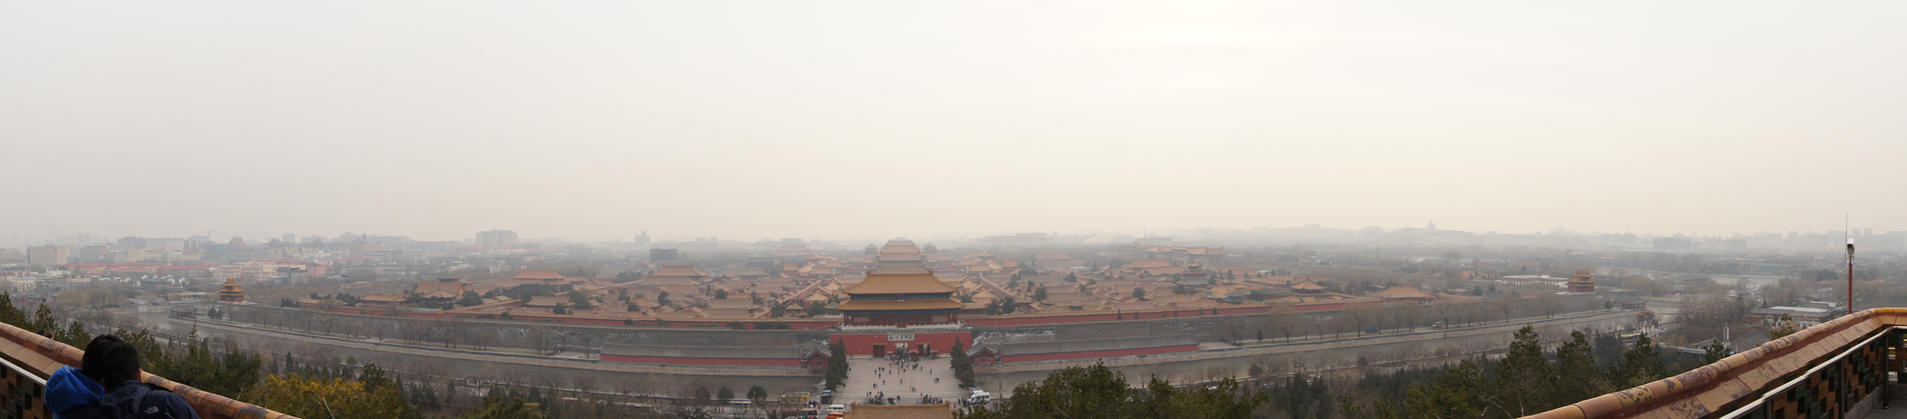 The Forbidden City. by samong98